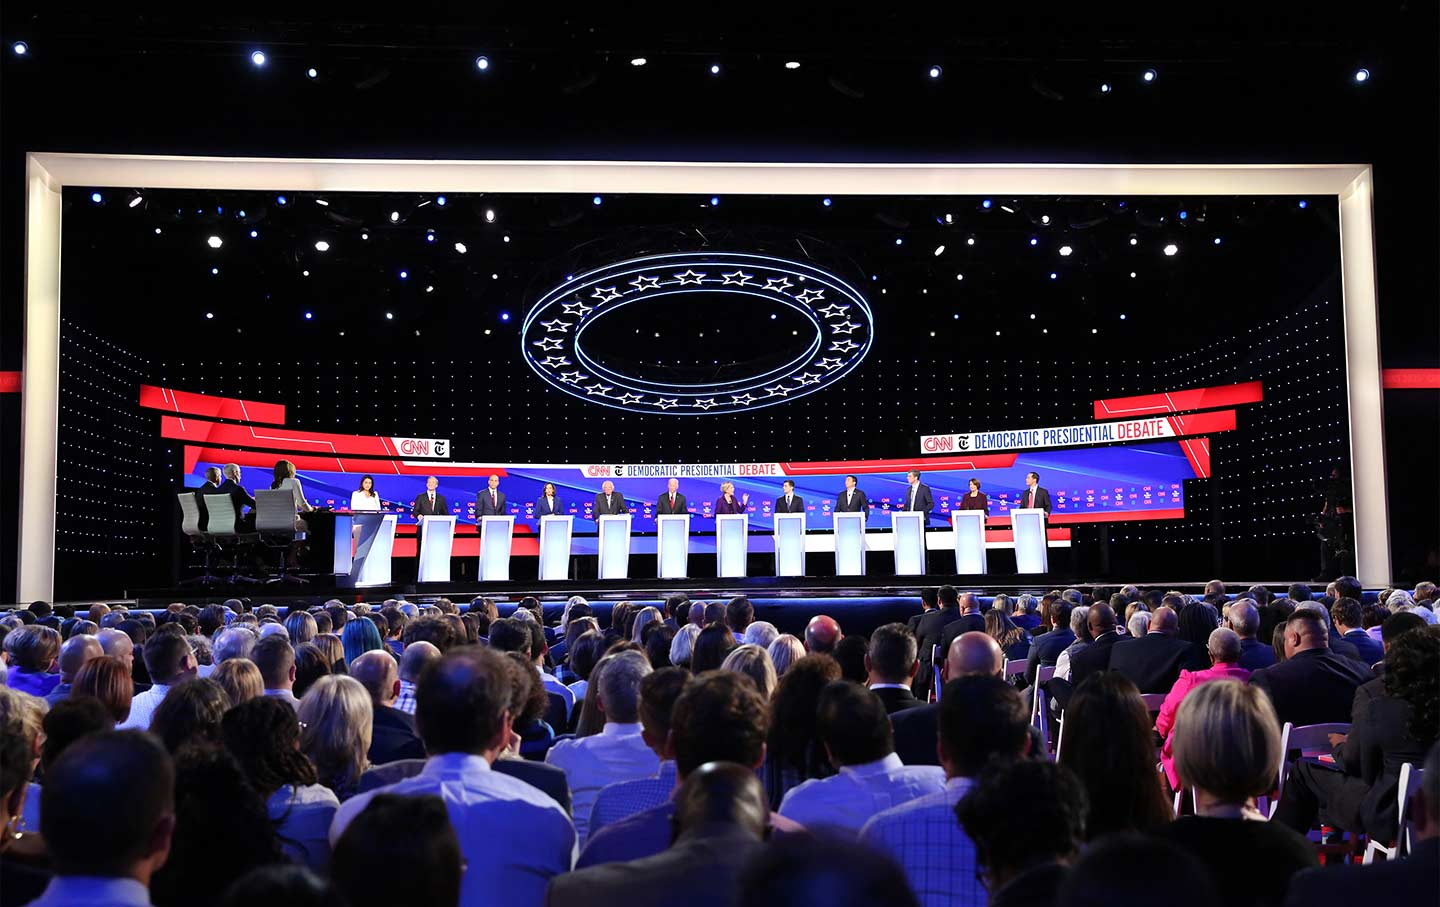 democratic-debate-stage-2020-rtr-img